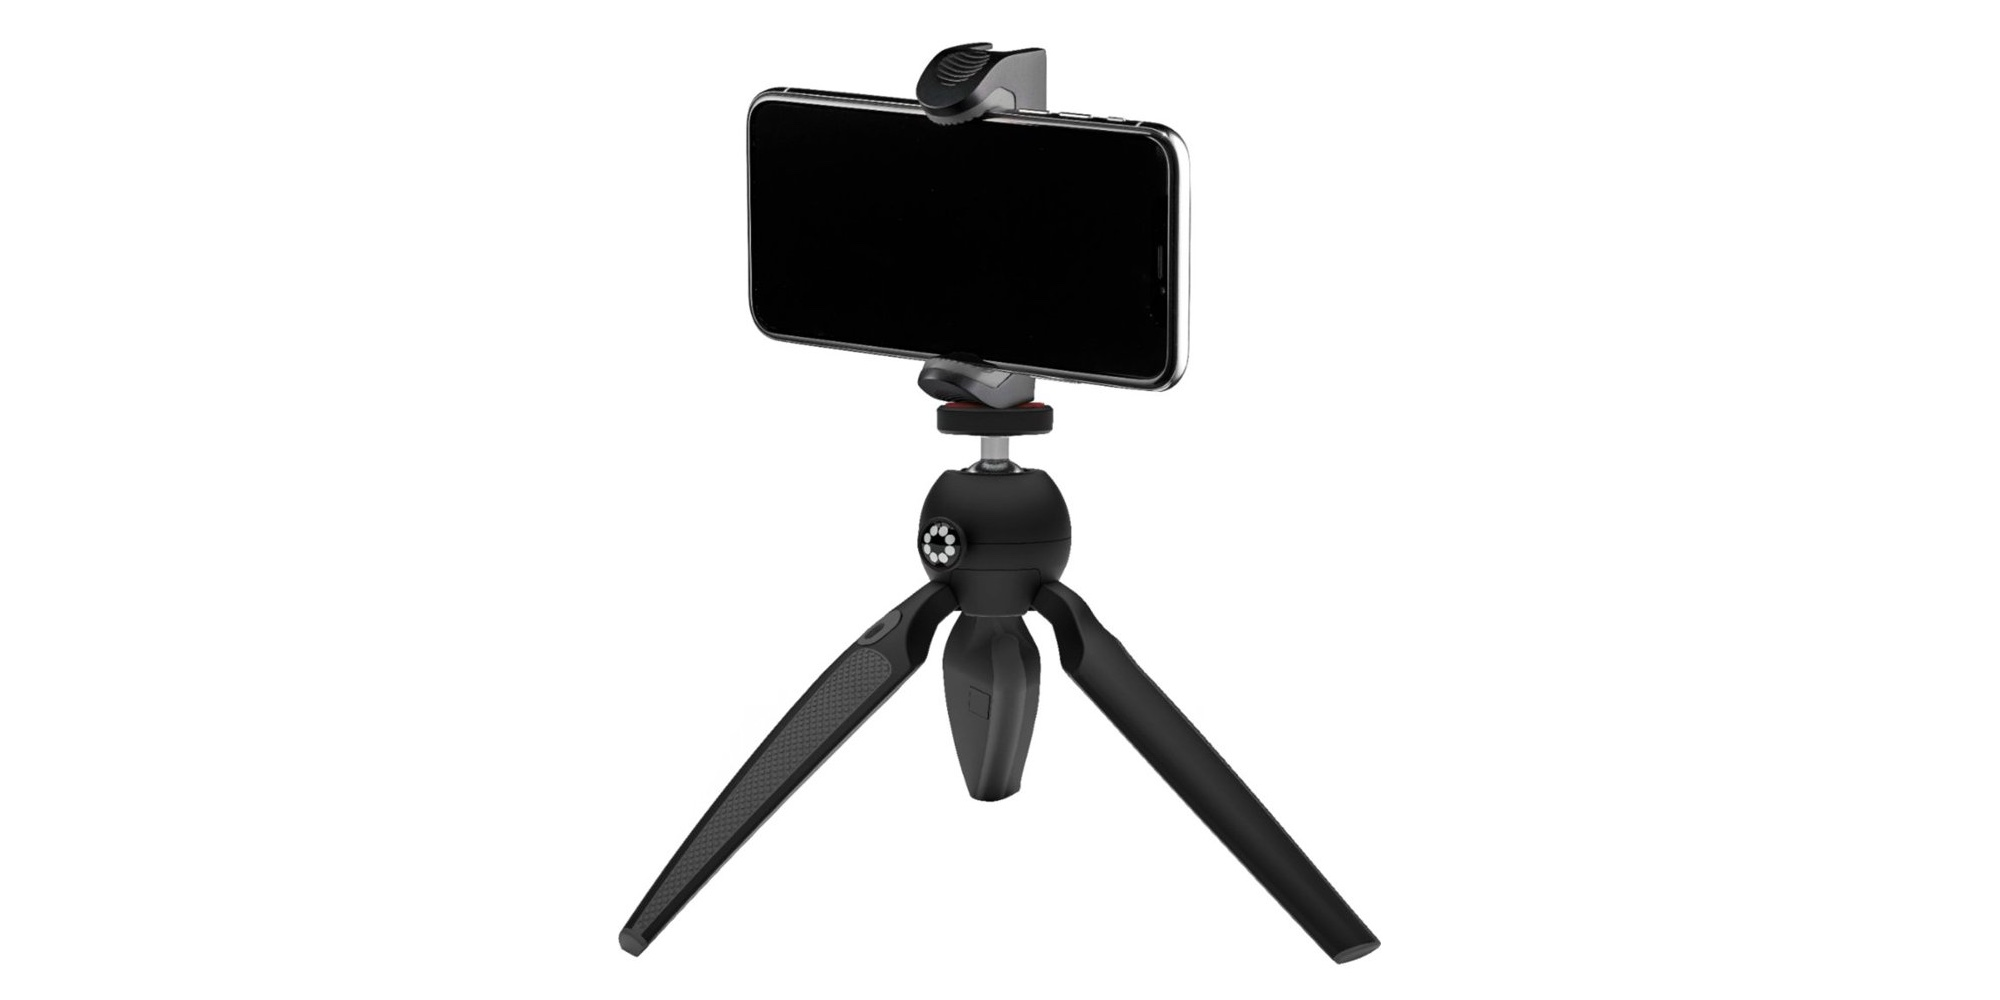 JOBY's HandyPod is a must-have for iPhoneographers at $30 (Save 25%) - 9to5Toys